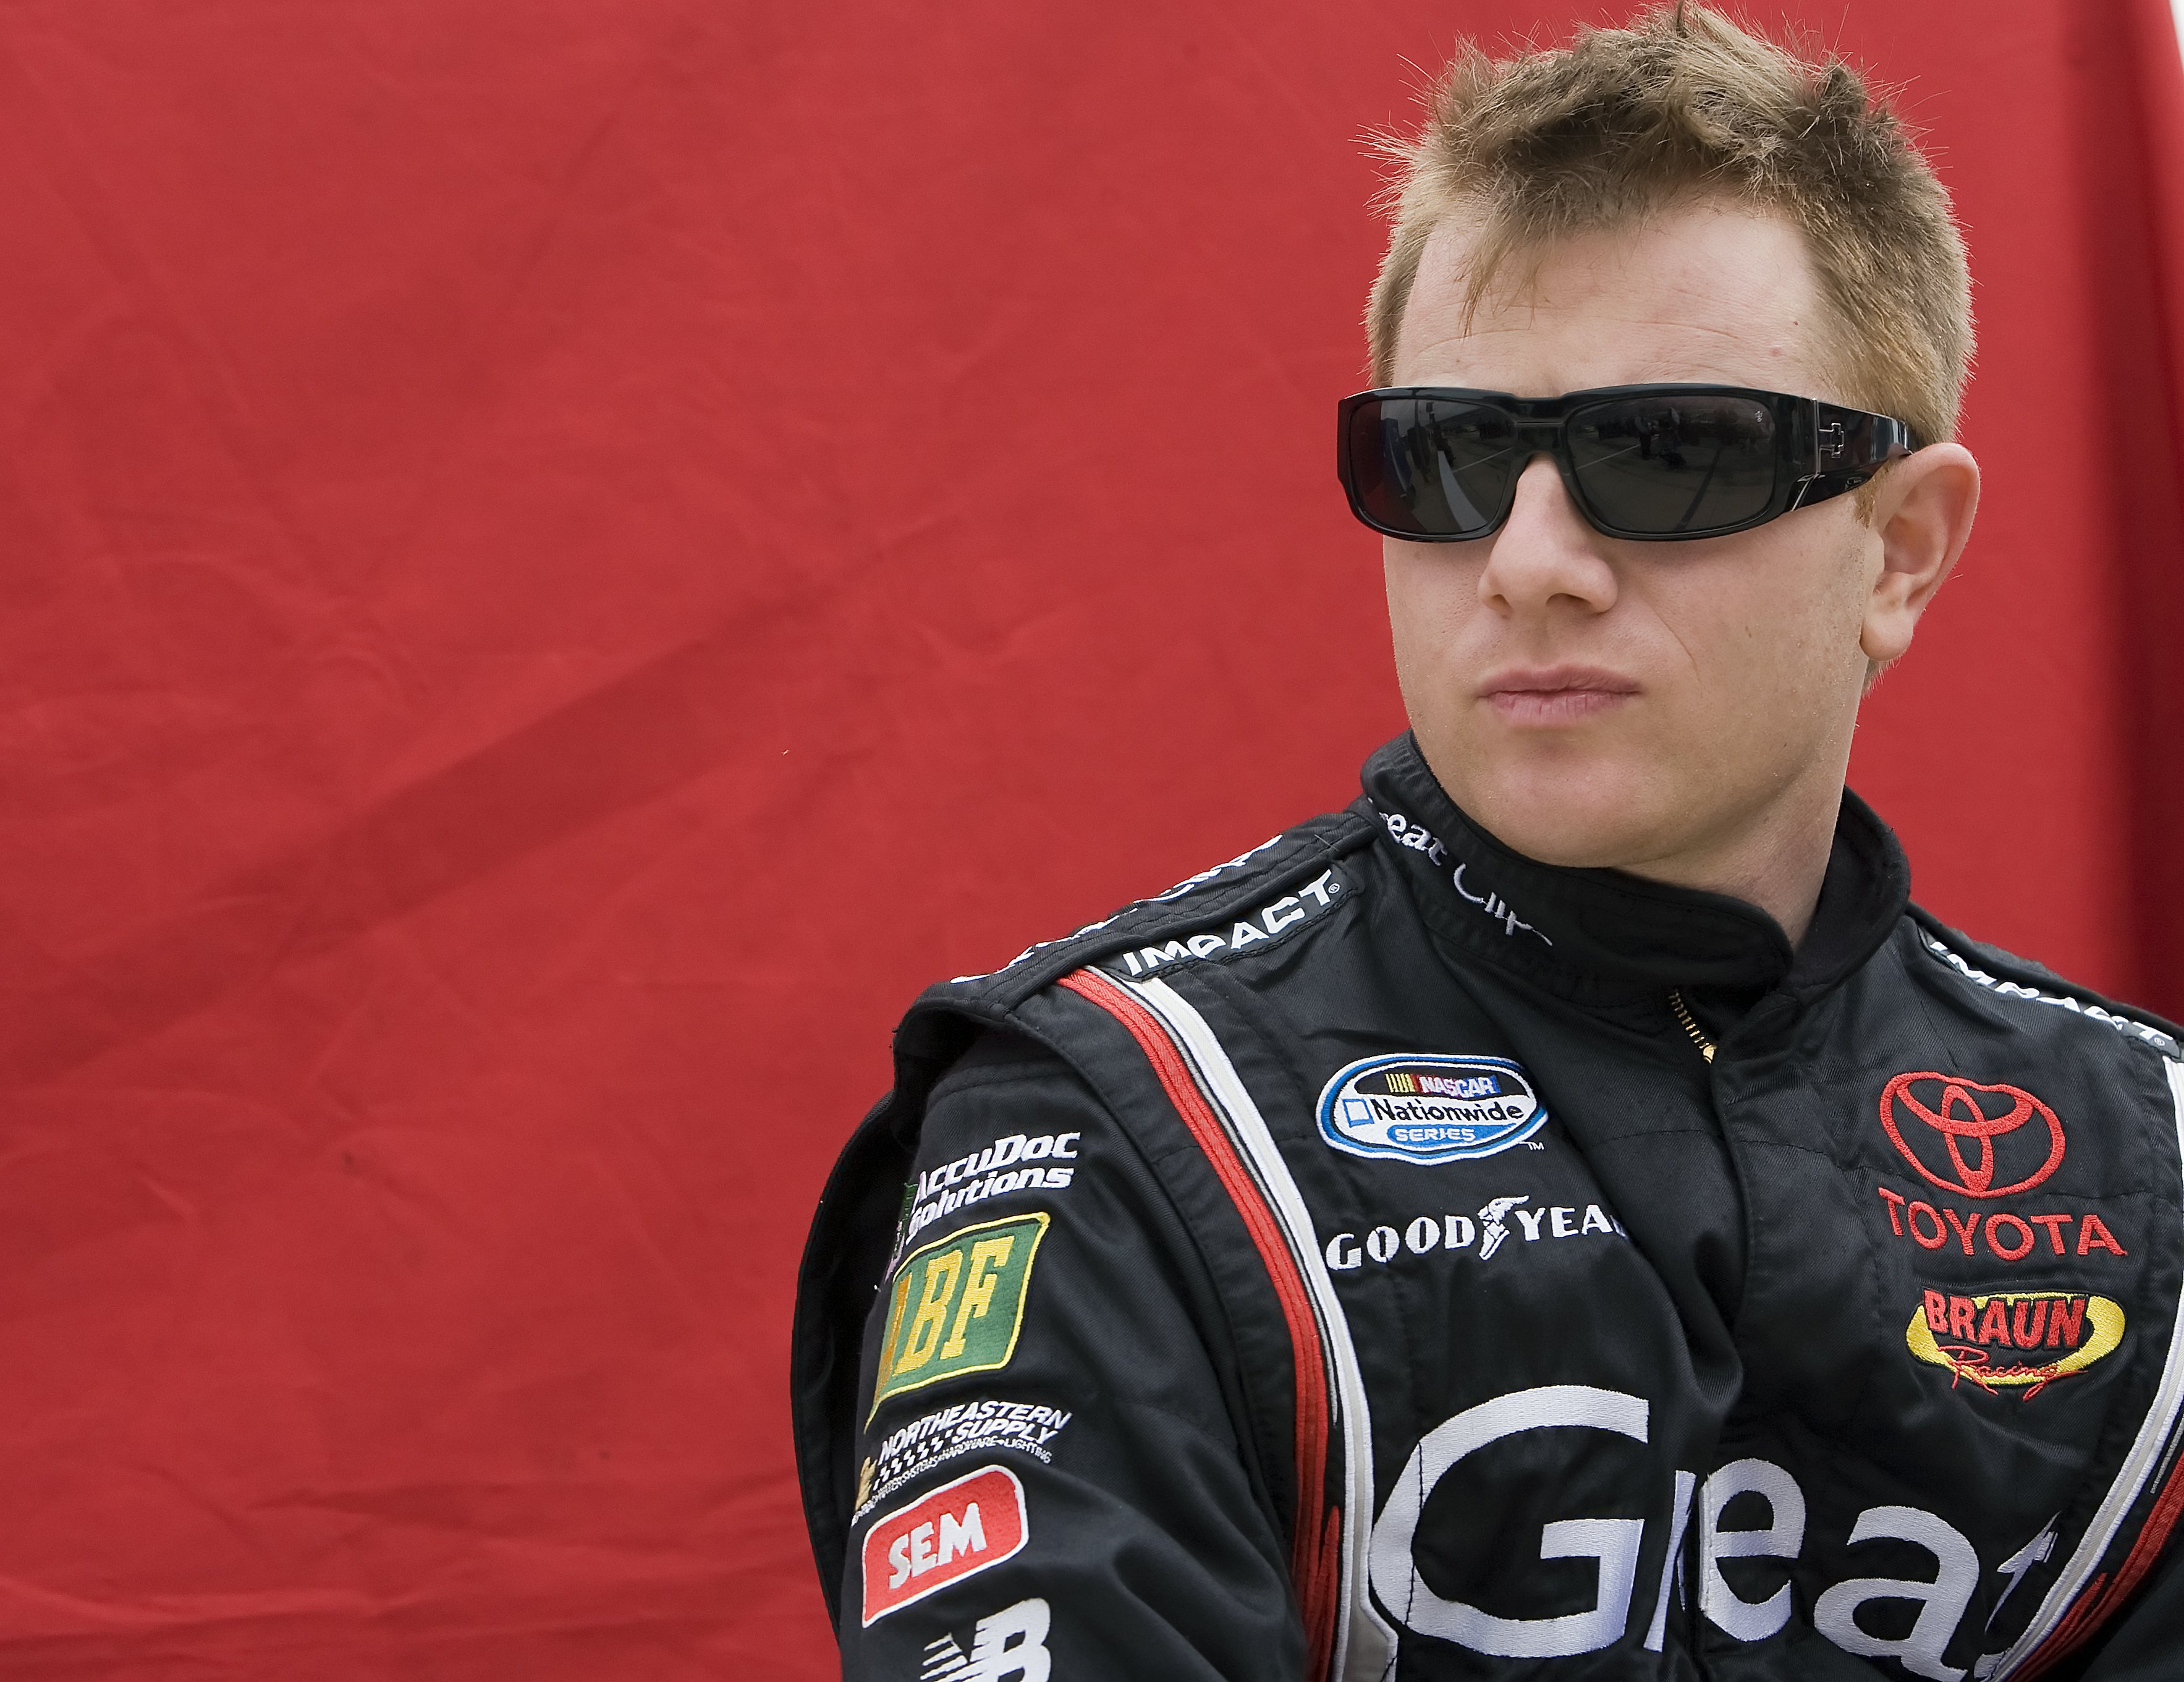 Jason Leffler at the Texas Motor Speedway on April 16, 2010 in Fort Worth, Texas | Photo: Shutterstock